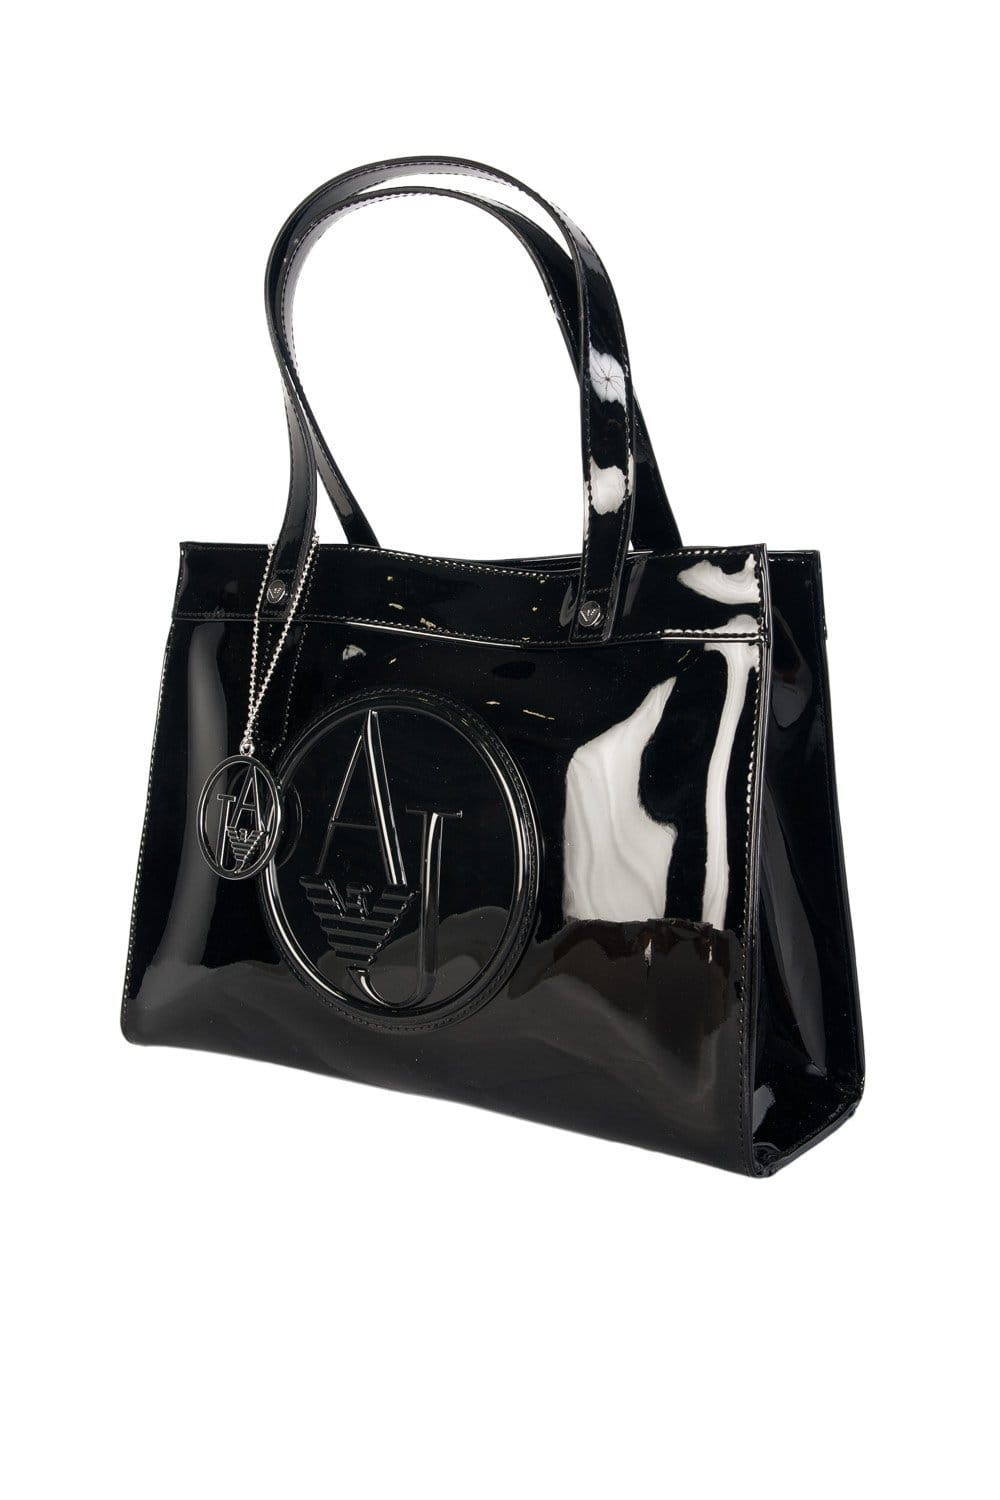 27defd8f Armani Jeans Ladies Faux Patent Leather Tote Bag in Black and Grey 0520ARJ